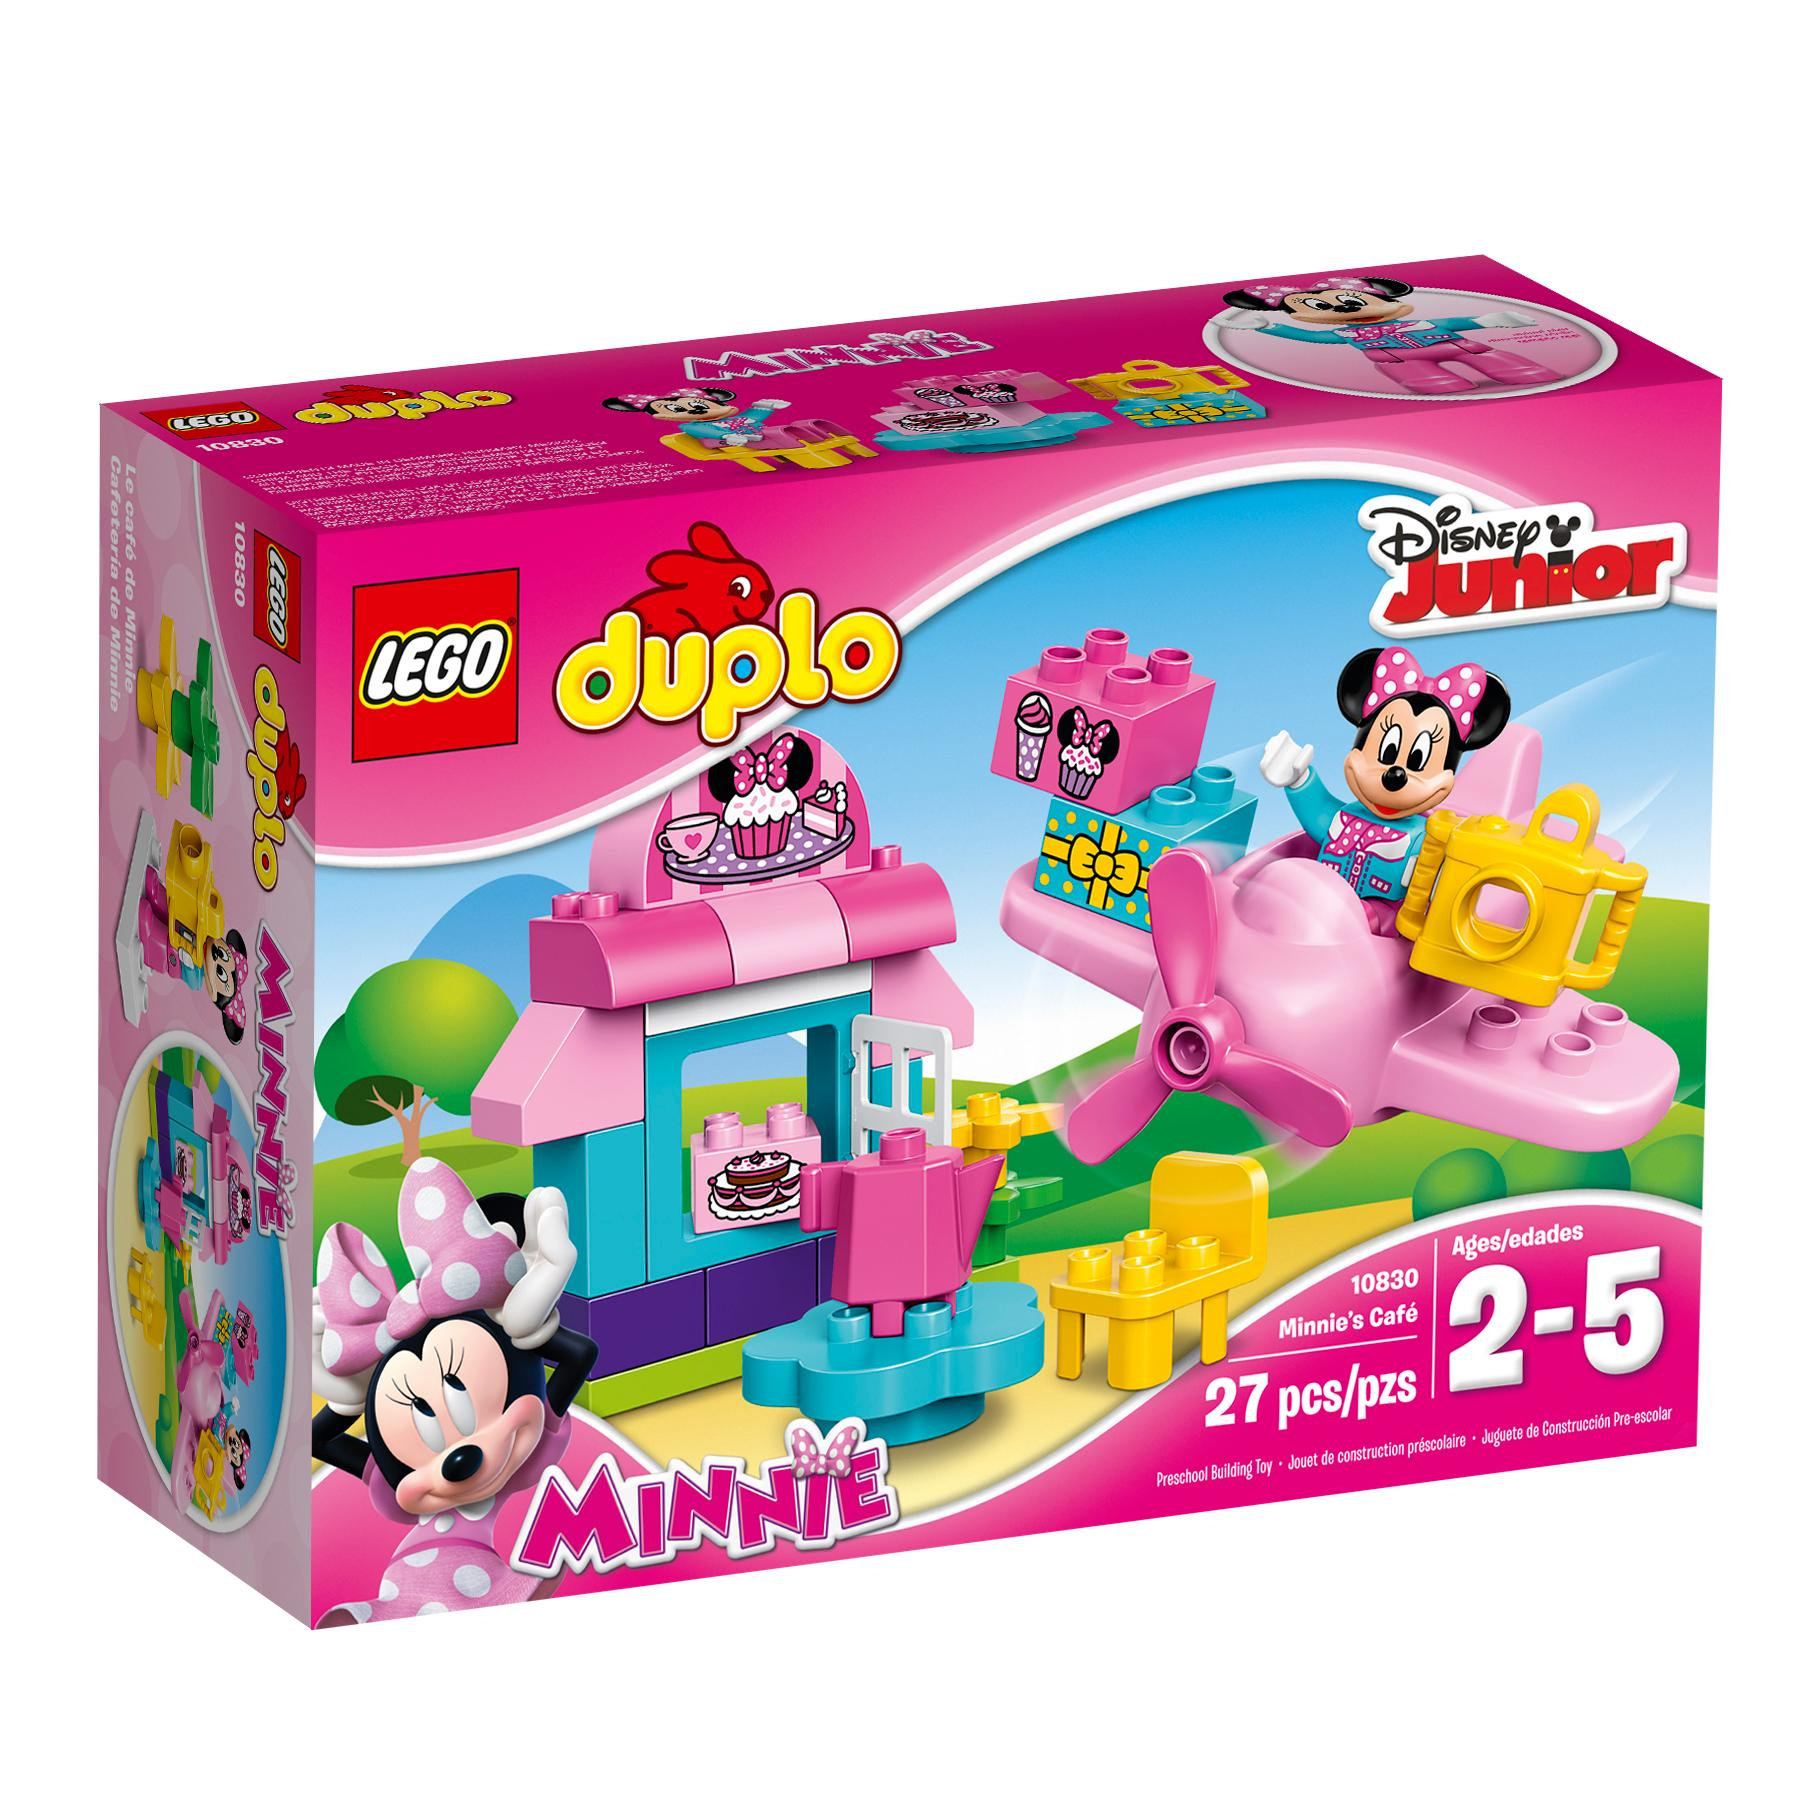 LEGO DUPLO l Disney Mickey Mouse Clubhouse Minnie s Café